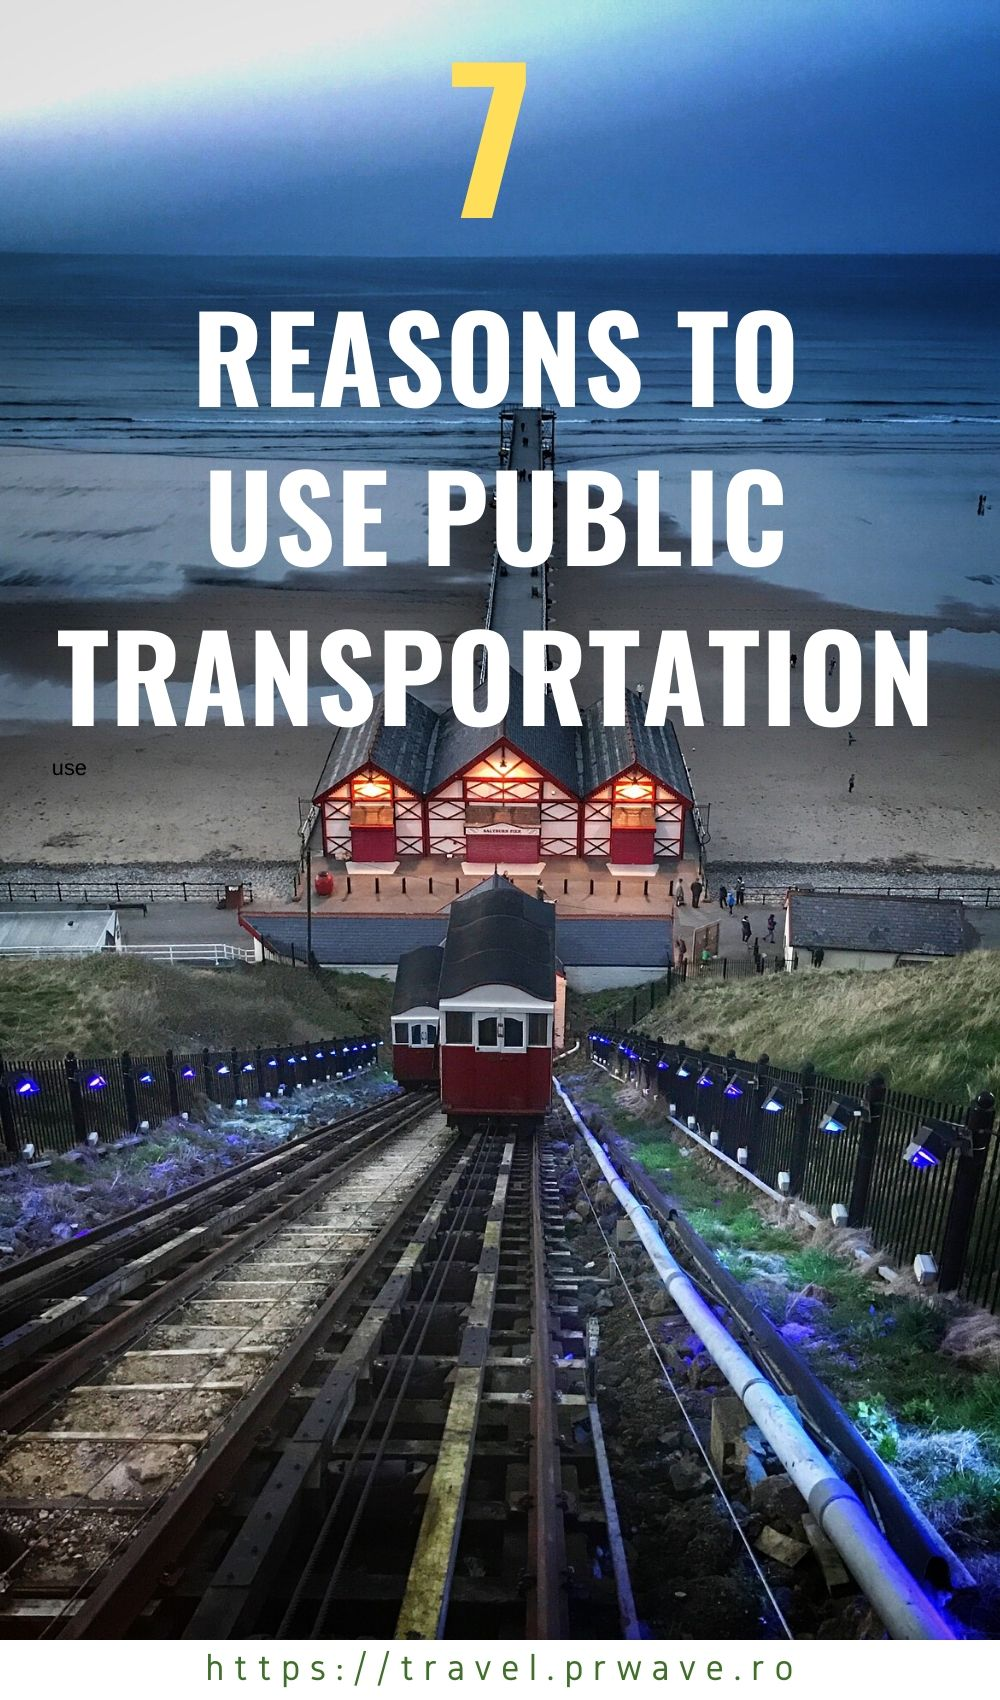 Planning a trip? Then consider using public transport on your vacation. You can get around many cities from across the globe using public transportation. Discover the benefits of using public transportation on your travels! #transport #tripplanning #publictransport